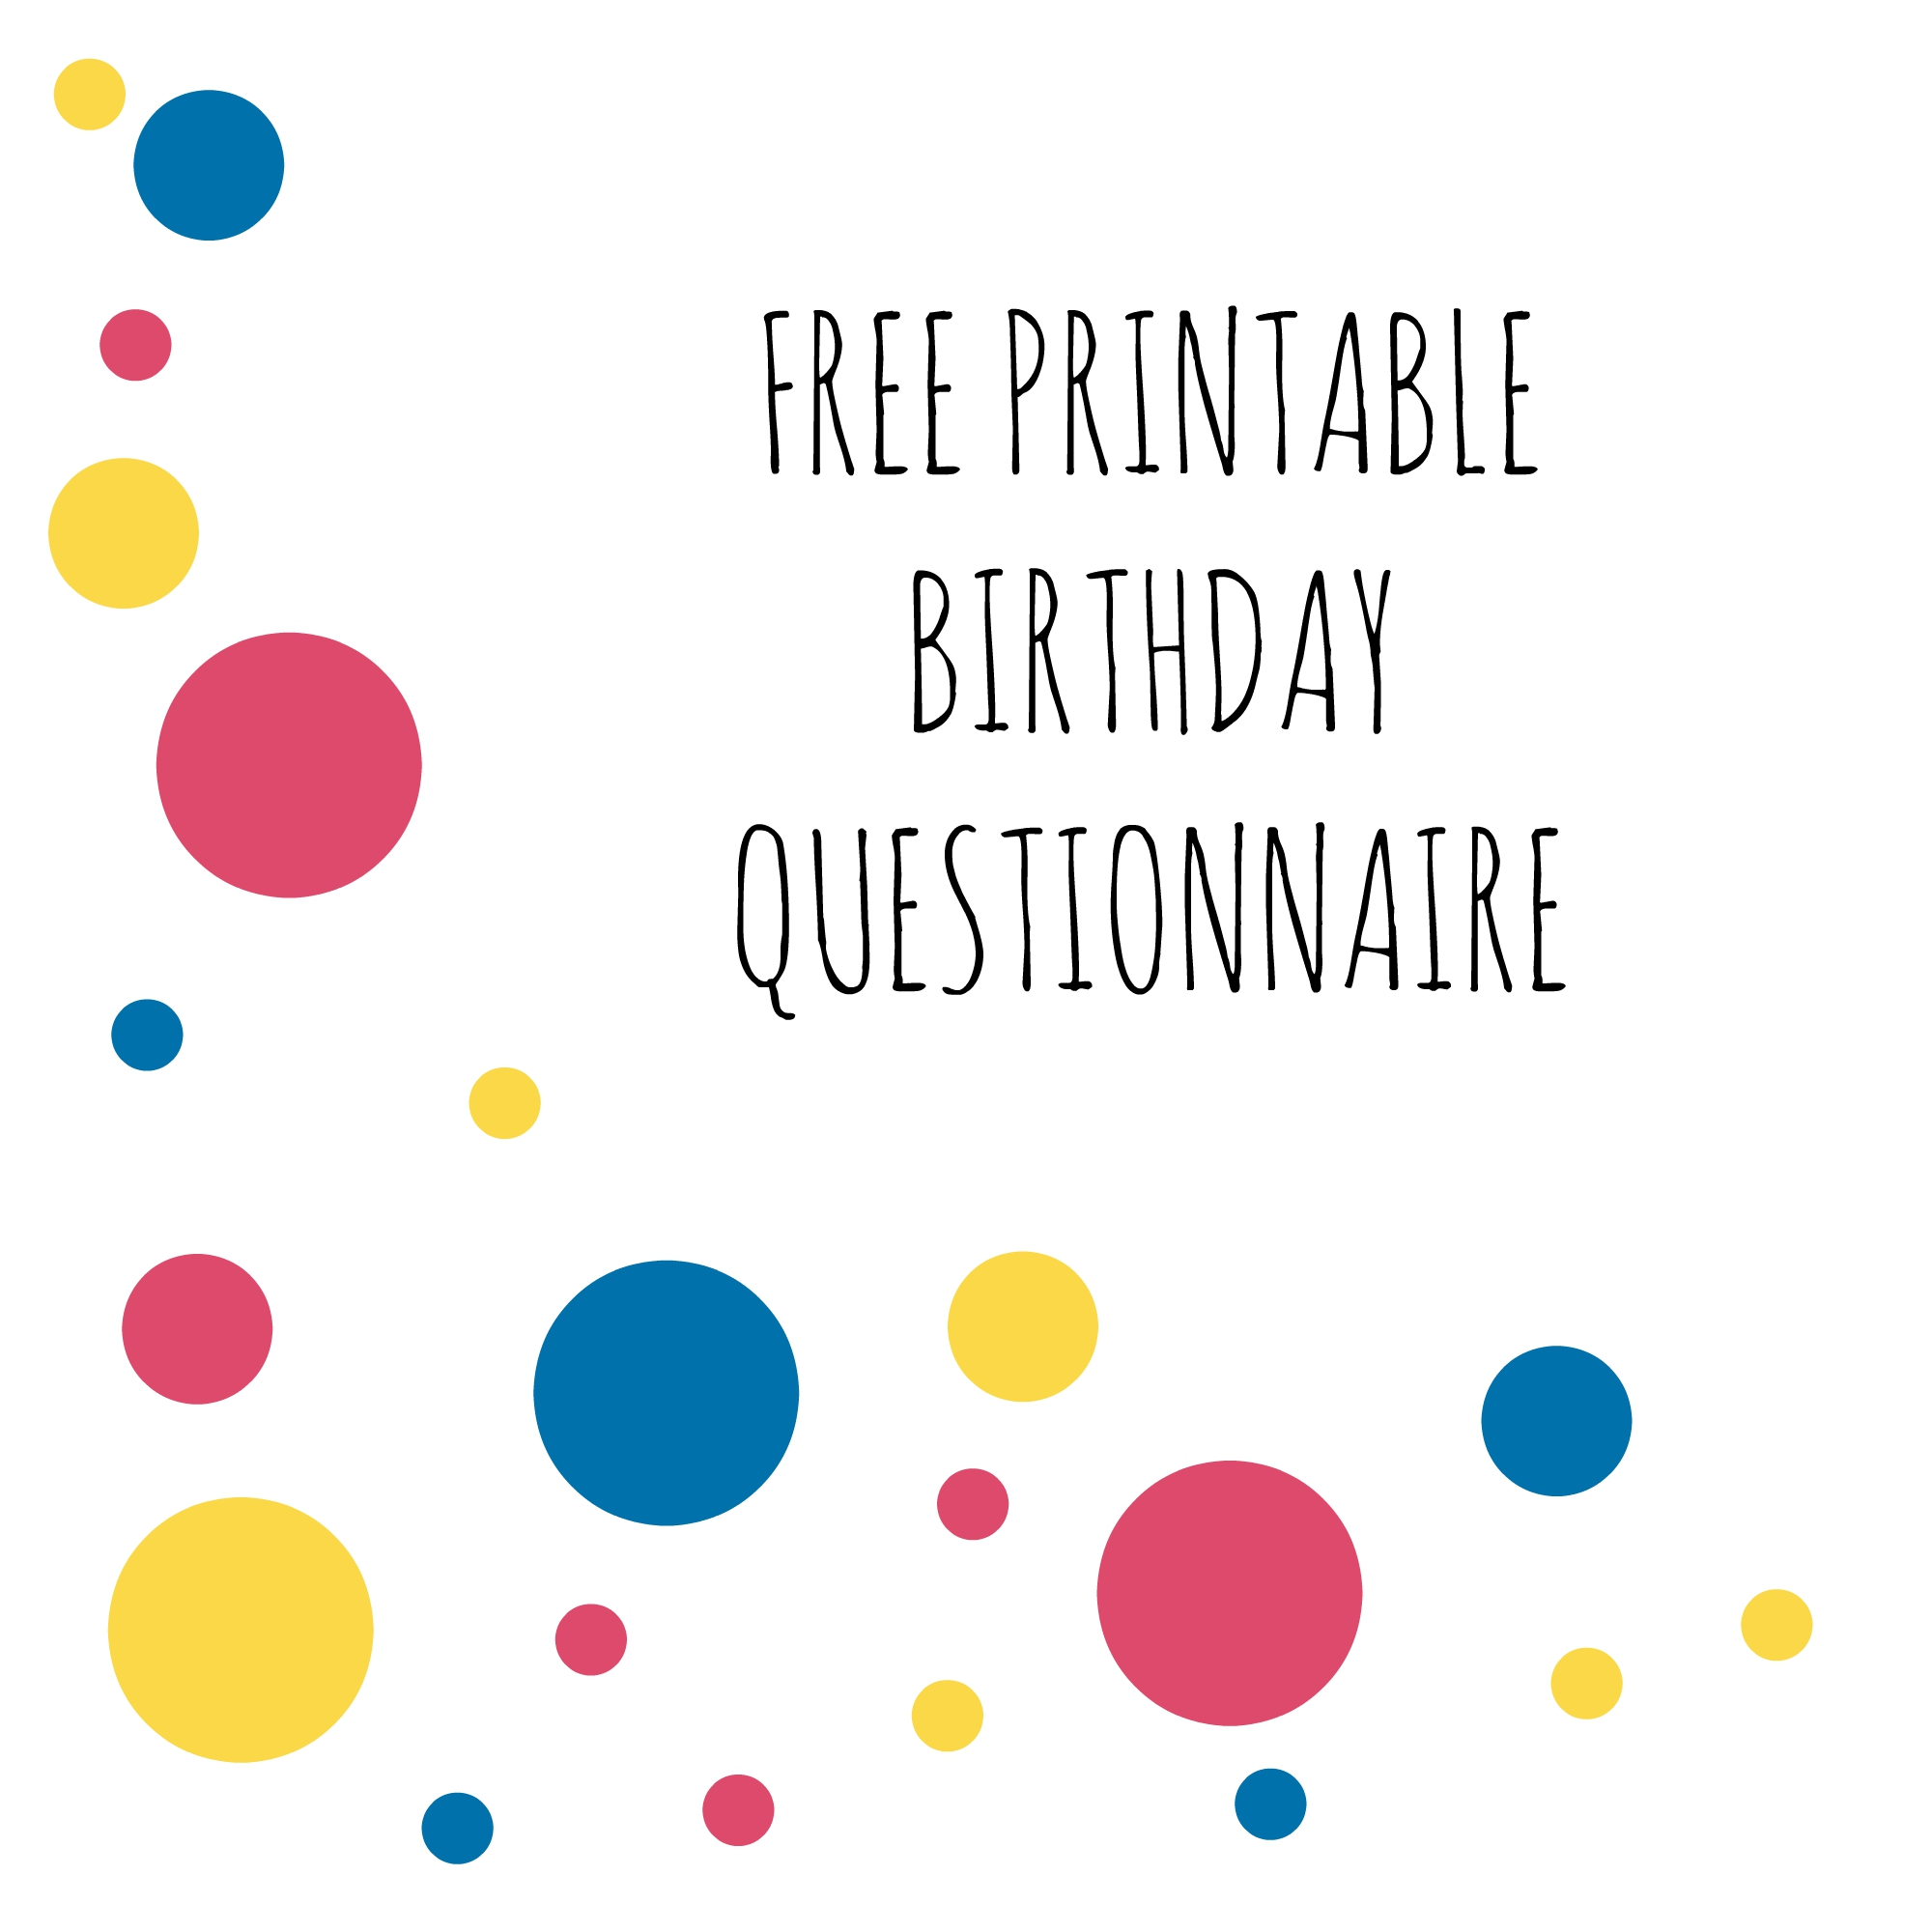 Birthday Questionnaire